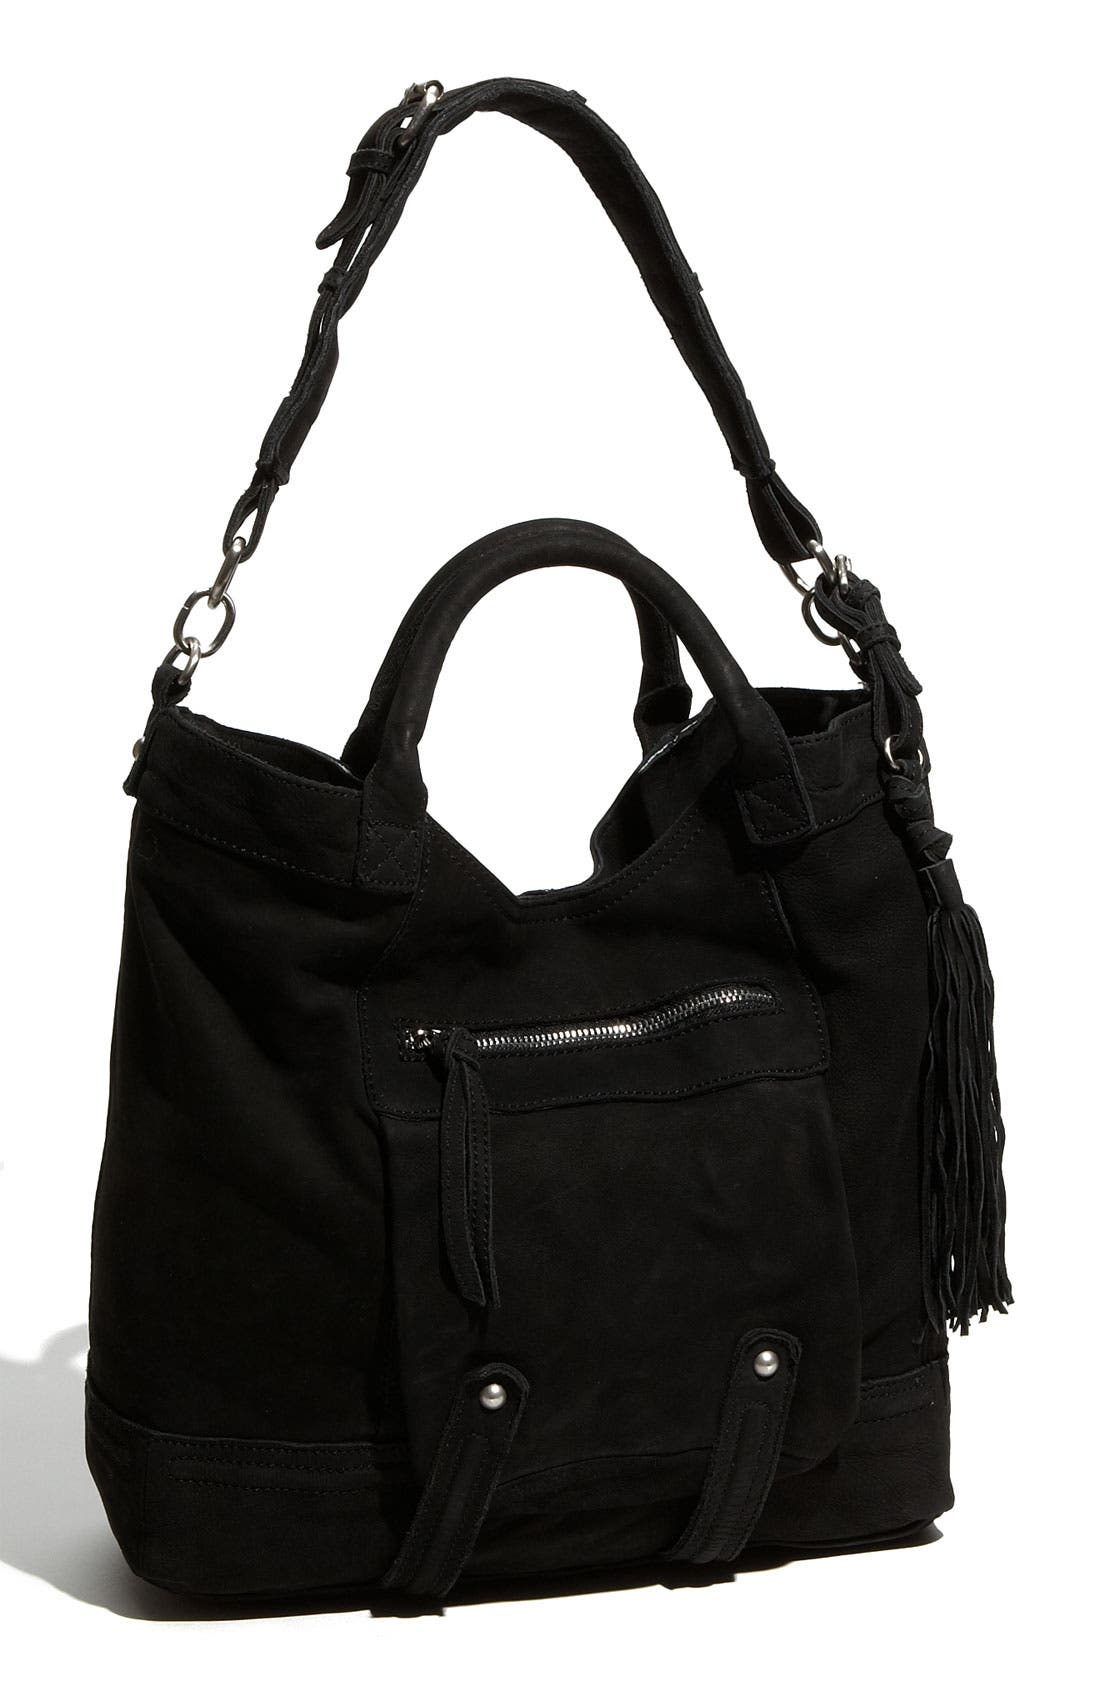 Alternate Image 1 Selected - Revel NY 'Chelsea' Leather Tote